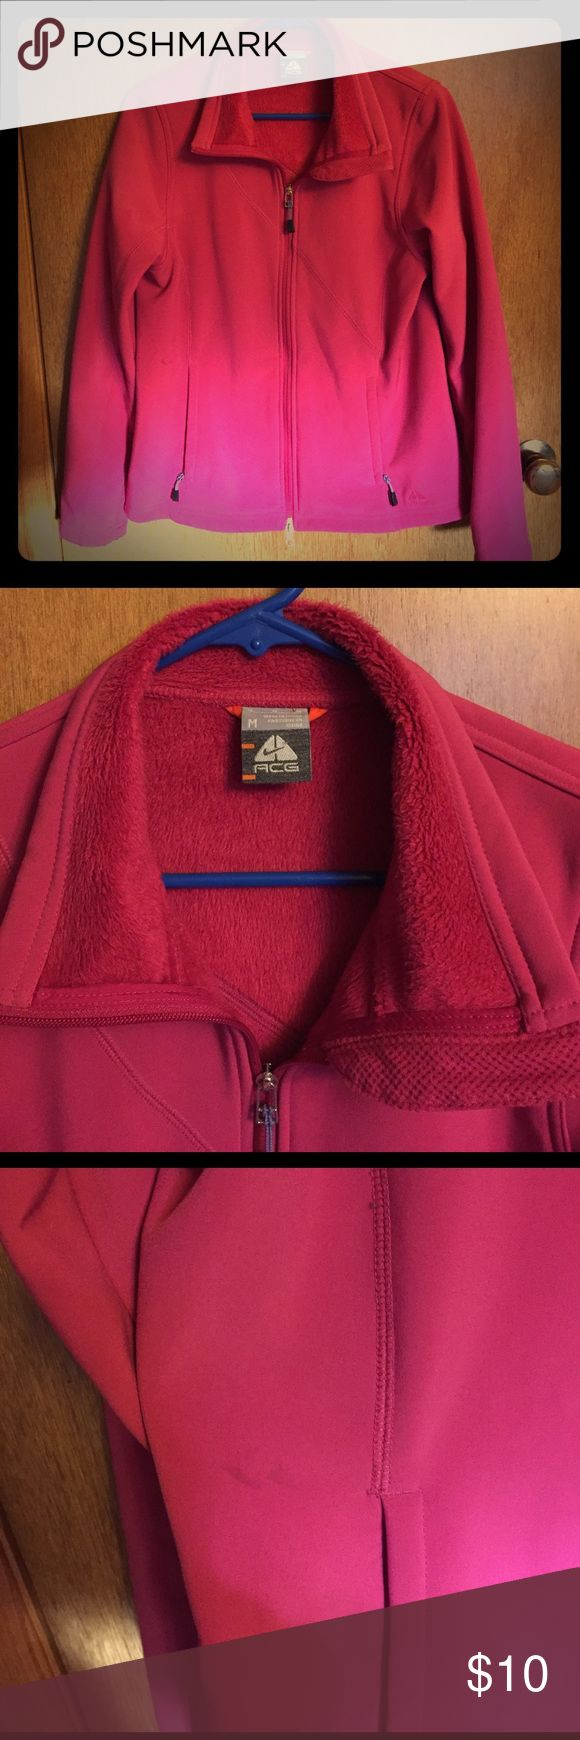 Nike ACG jacket Pink ACG jacket lined. Has a small mark under right arm (in picture) and two small marks on shoulder on the back (pictured) Nike Jackets & Coats